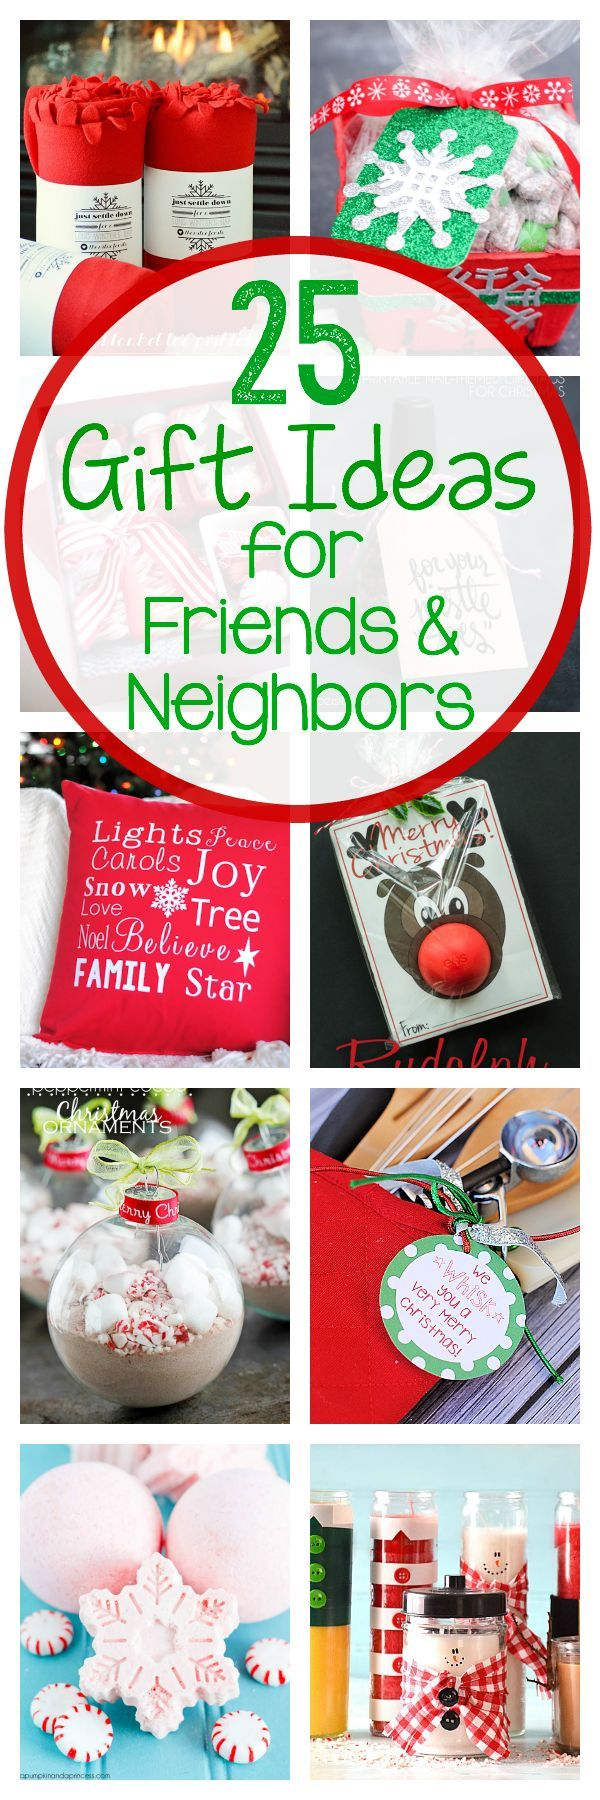 Best 25 neighbor christmas gifts ideas on pinterest fun Easy gift ideas for friends